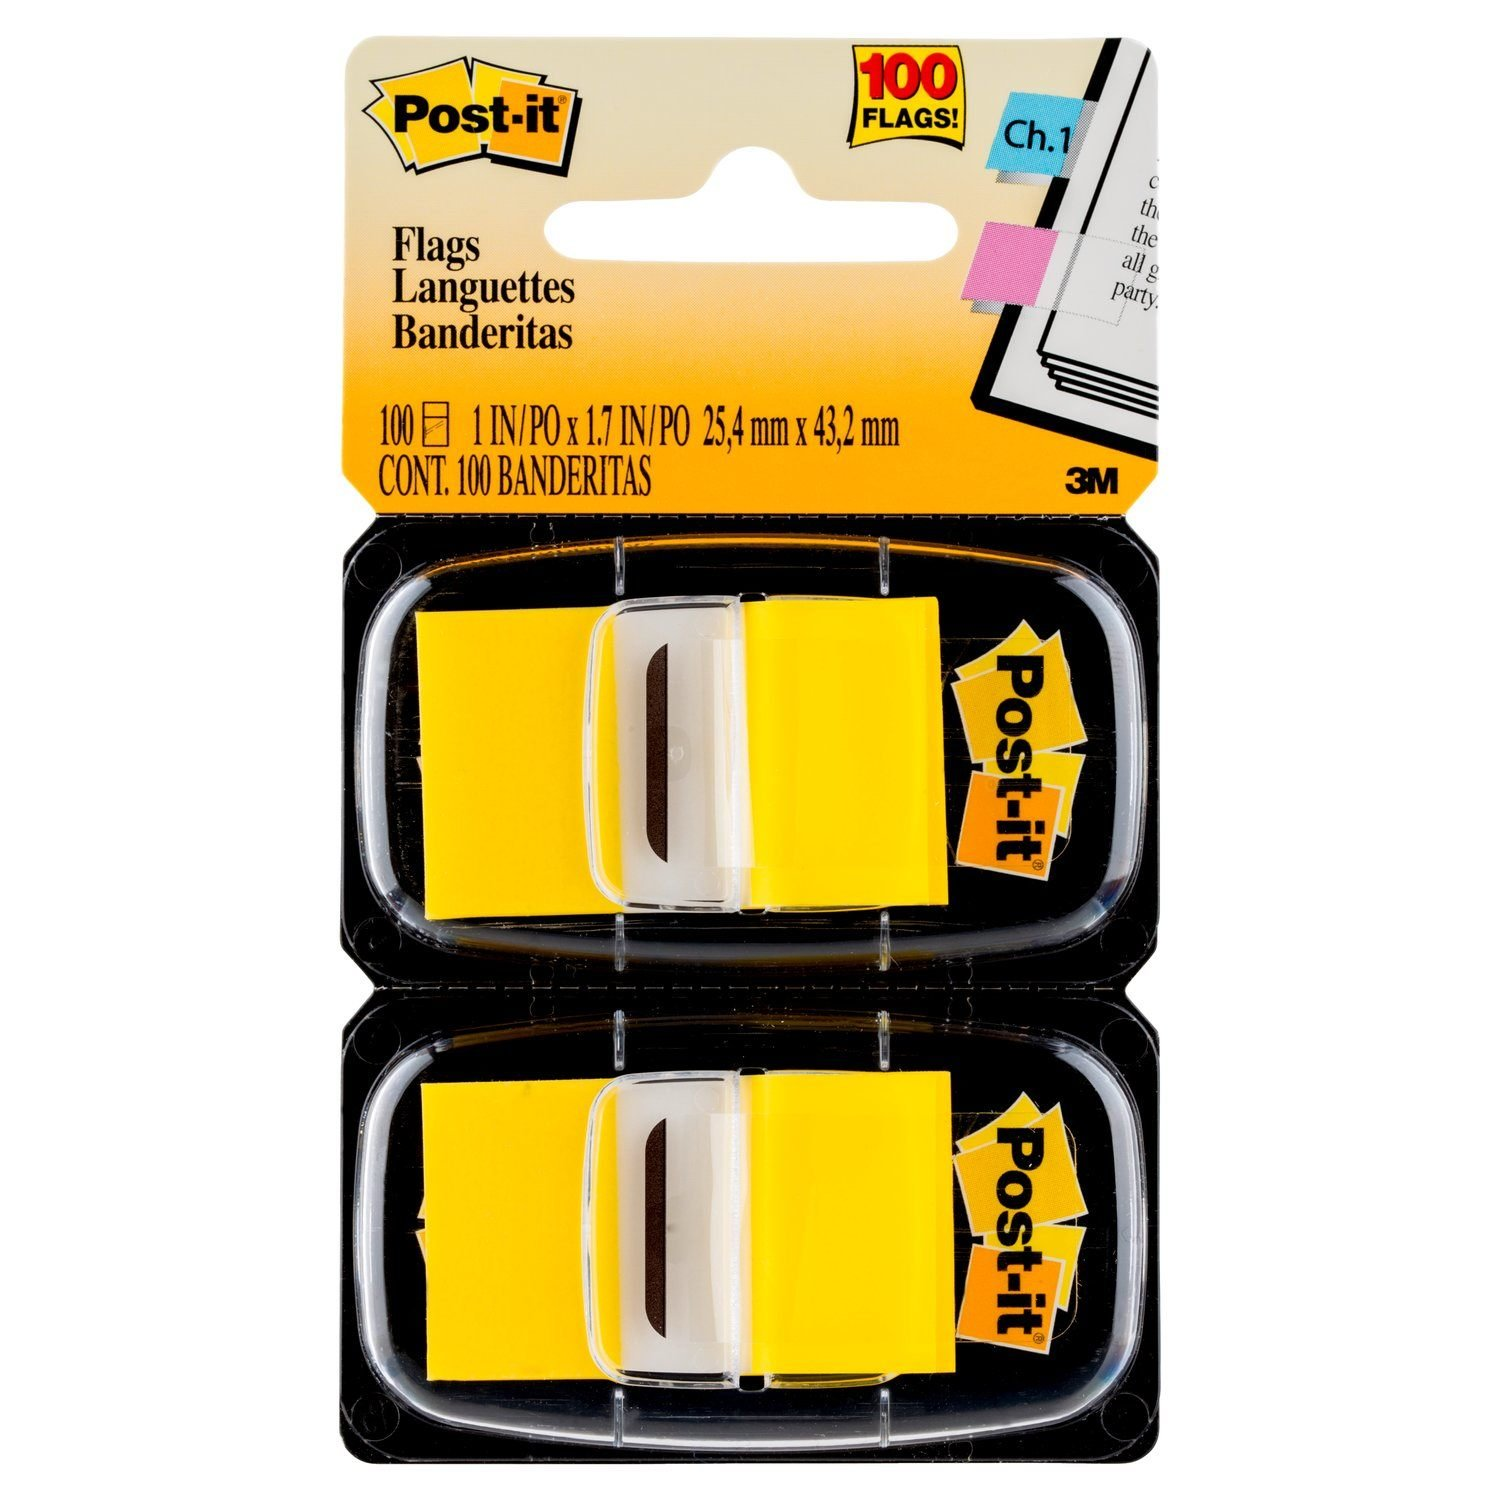 Post-it Flags, Yellow, 1-Inch Wide, 100 Flags, Use to Highlight Important Information (680-YW2)